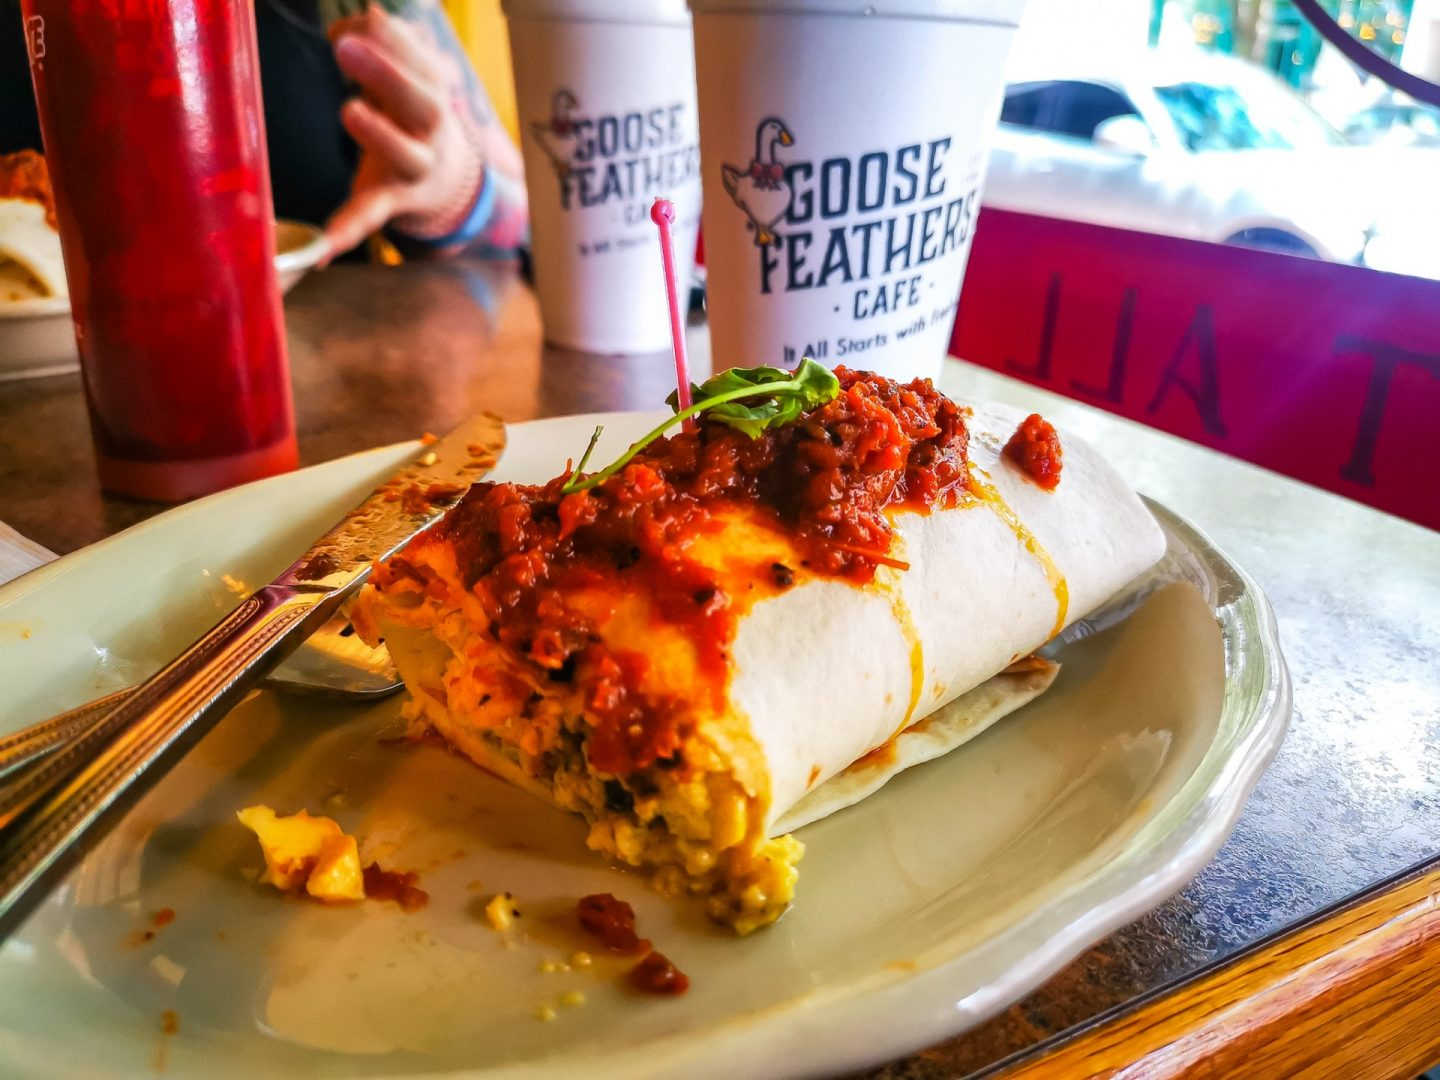 Best Places to Eat in Savannah Georgia goose feathers